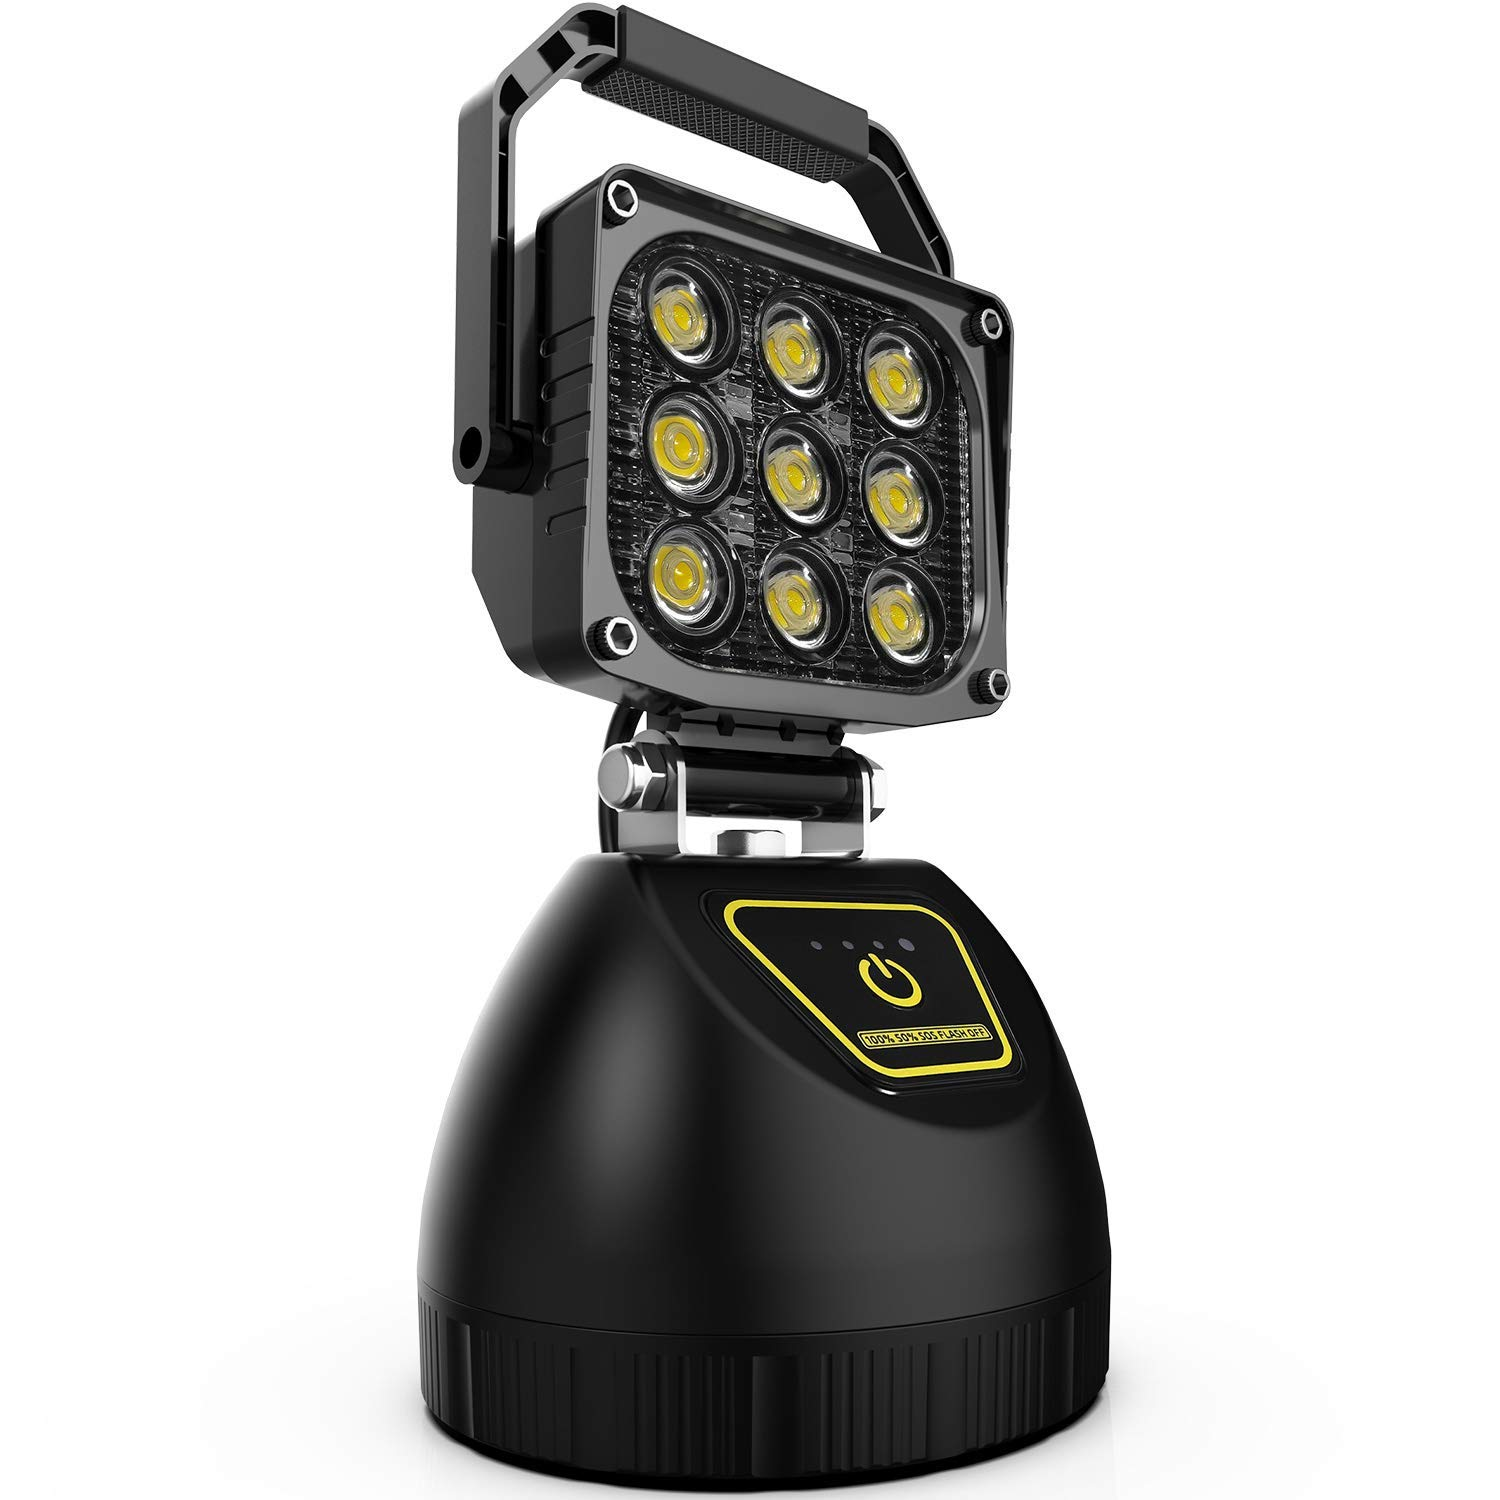 Wiland  LED Work Light Rechargeable 27W Portable Outdoor Camping Light LED Emergency Flood Light for Auto Boat Home Security Farm Field Repair Workshop LED Search Light with SOS Function Magnetic Base